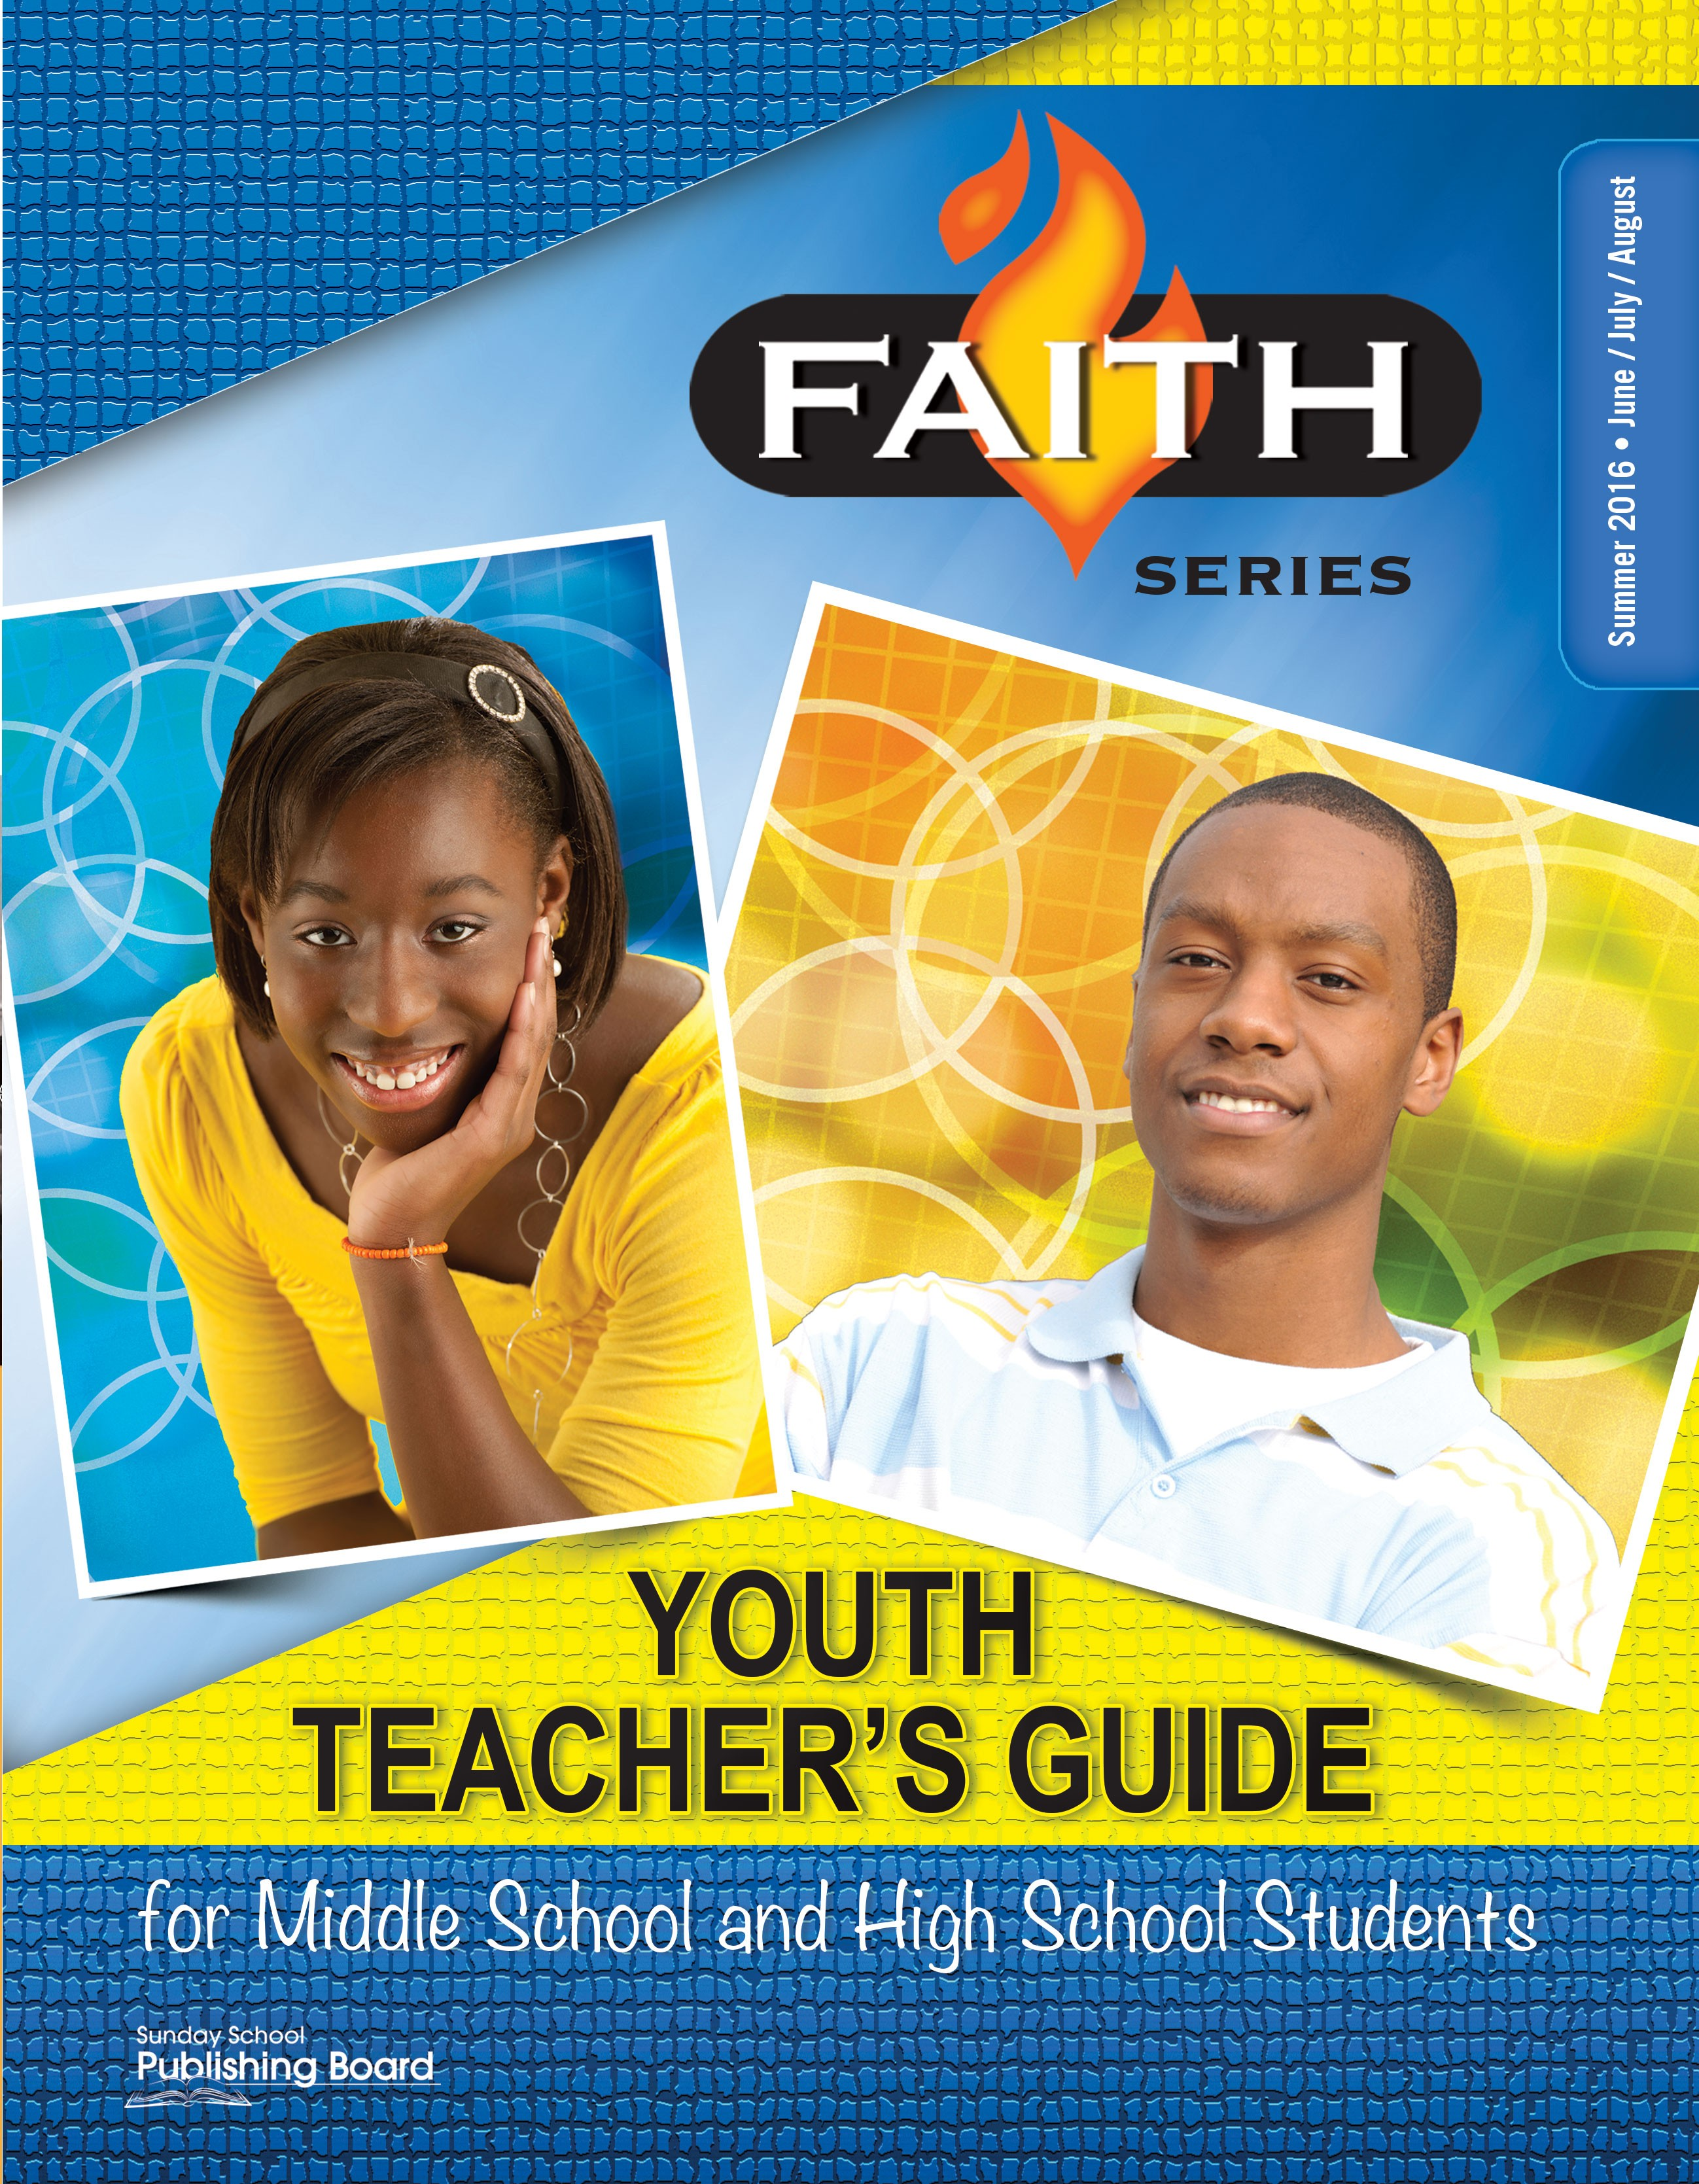 Faith Series Youth Teacher's Guide - for Middle School and High School Students